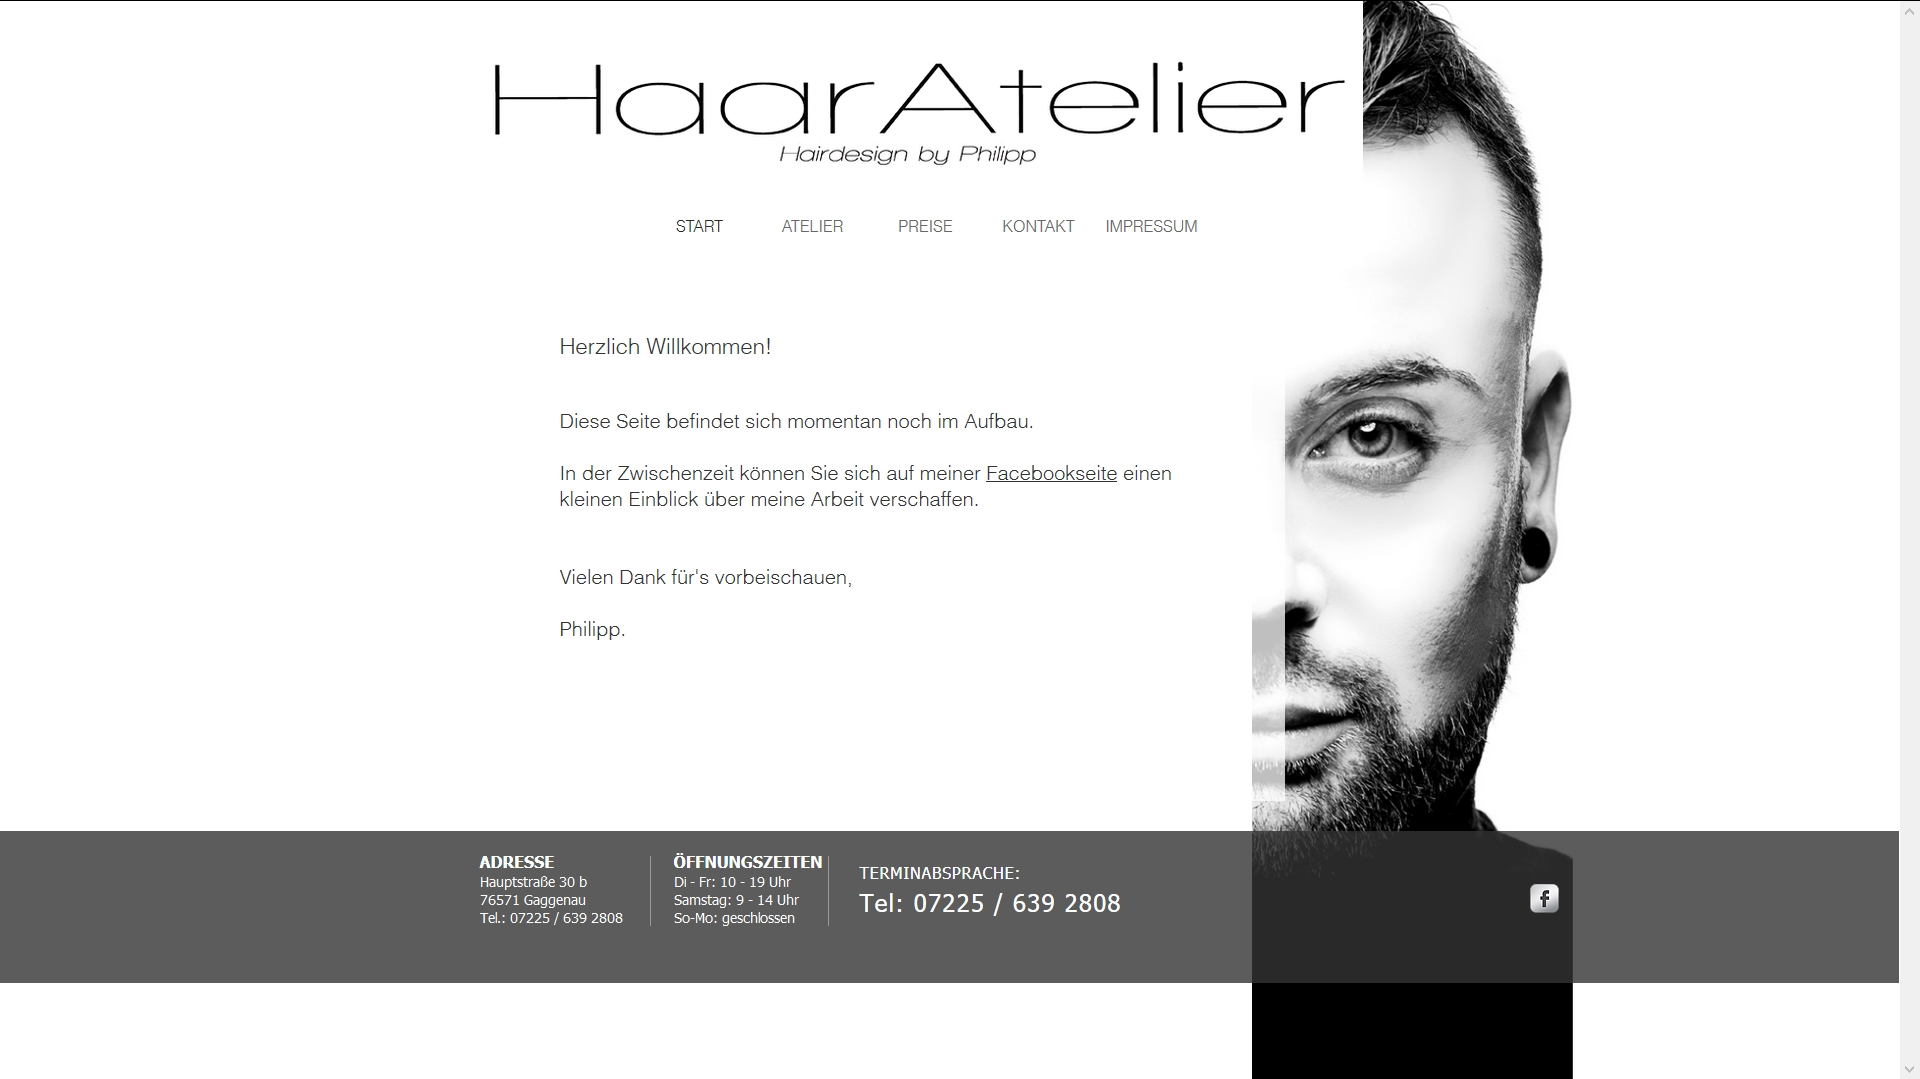 HaarAtelier Philipp Luft